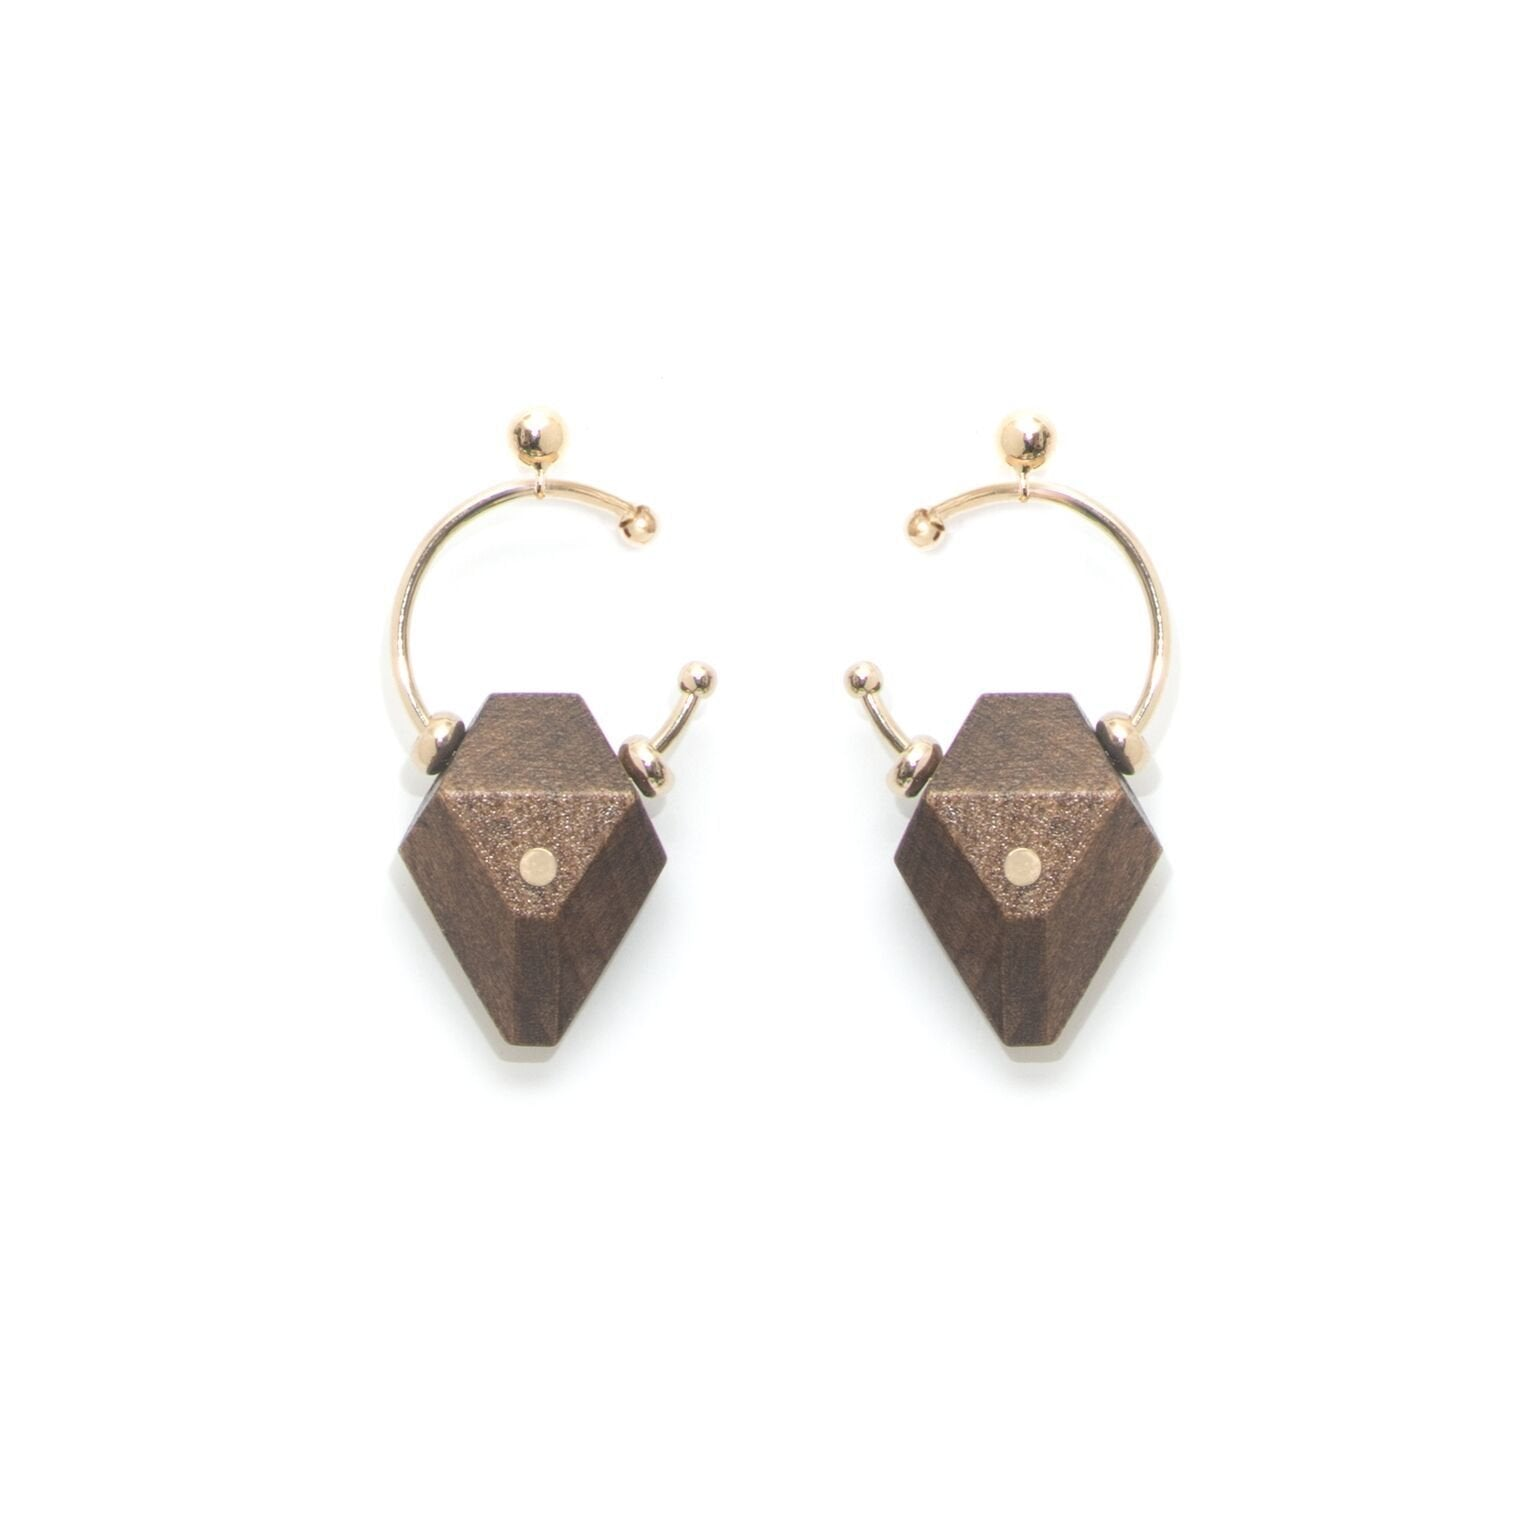 Canip Gray Champagne Earrings - The Clothing LoungeSalomé Charly